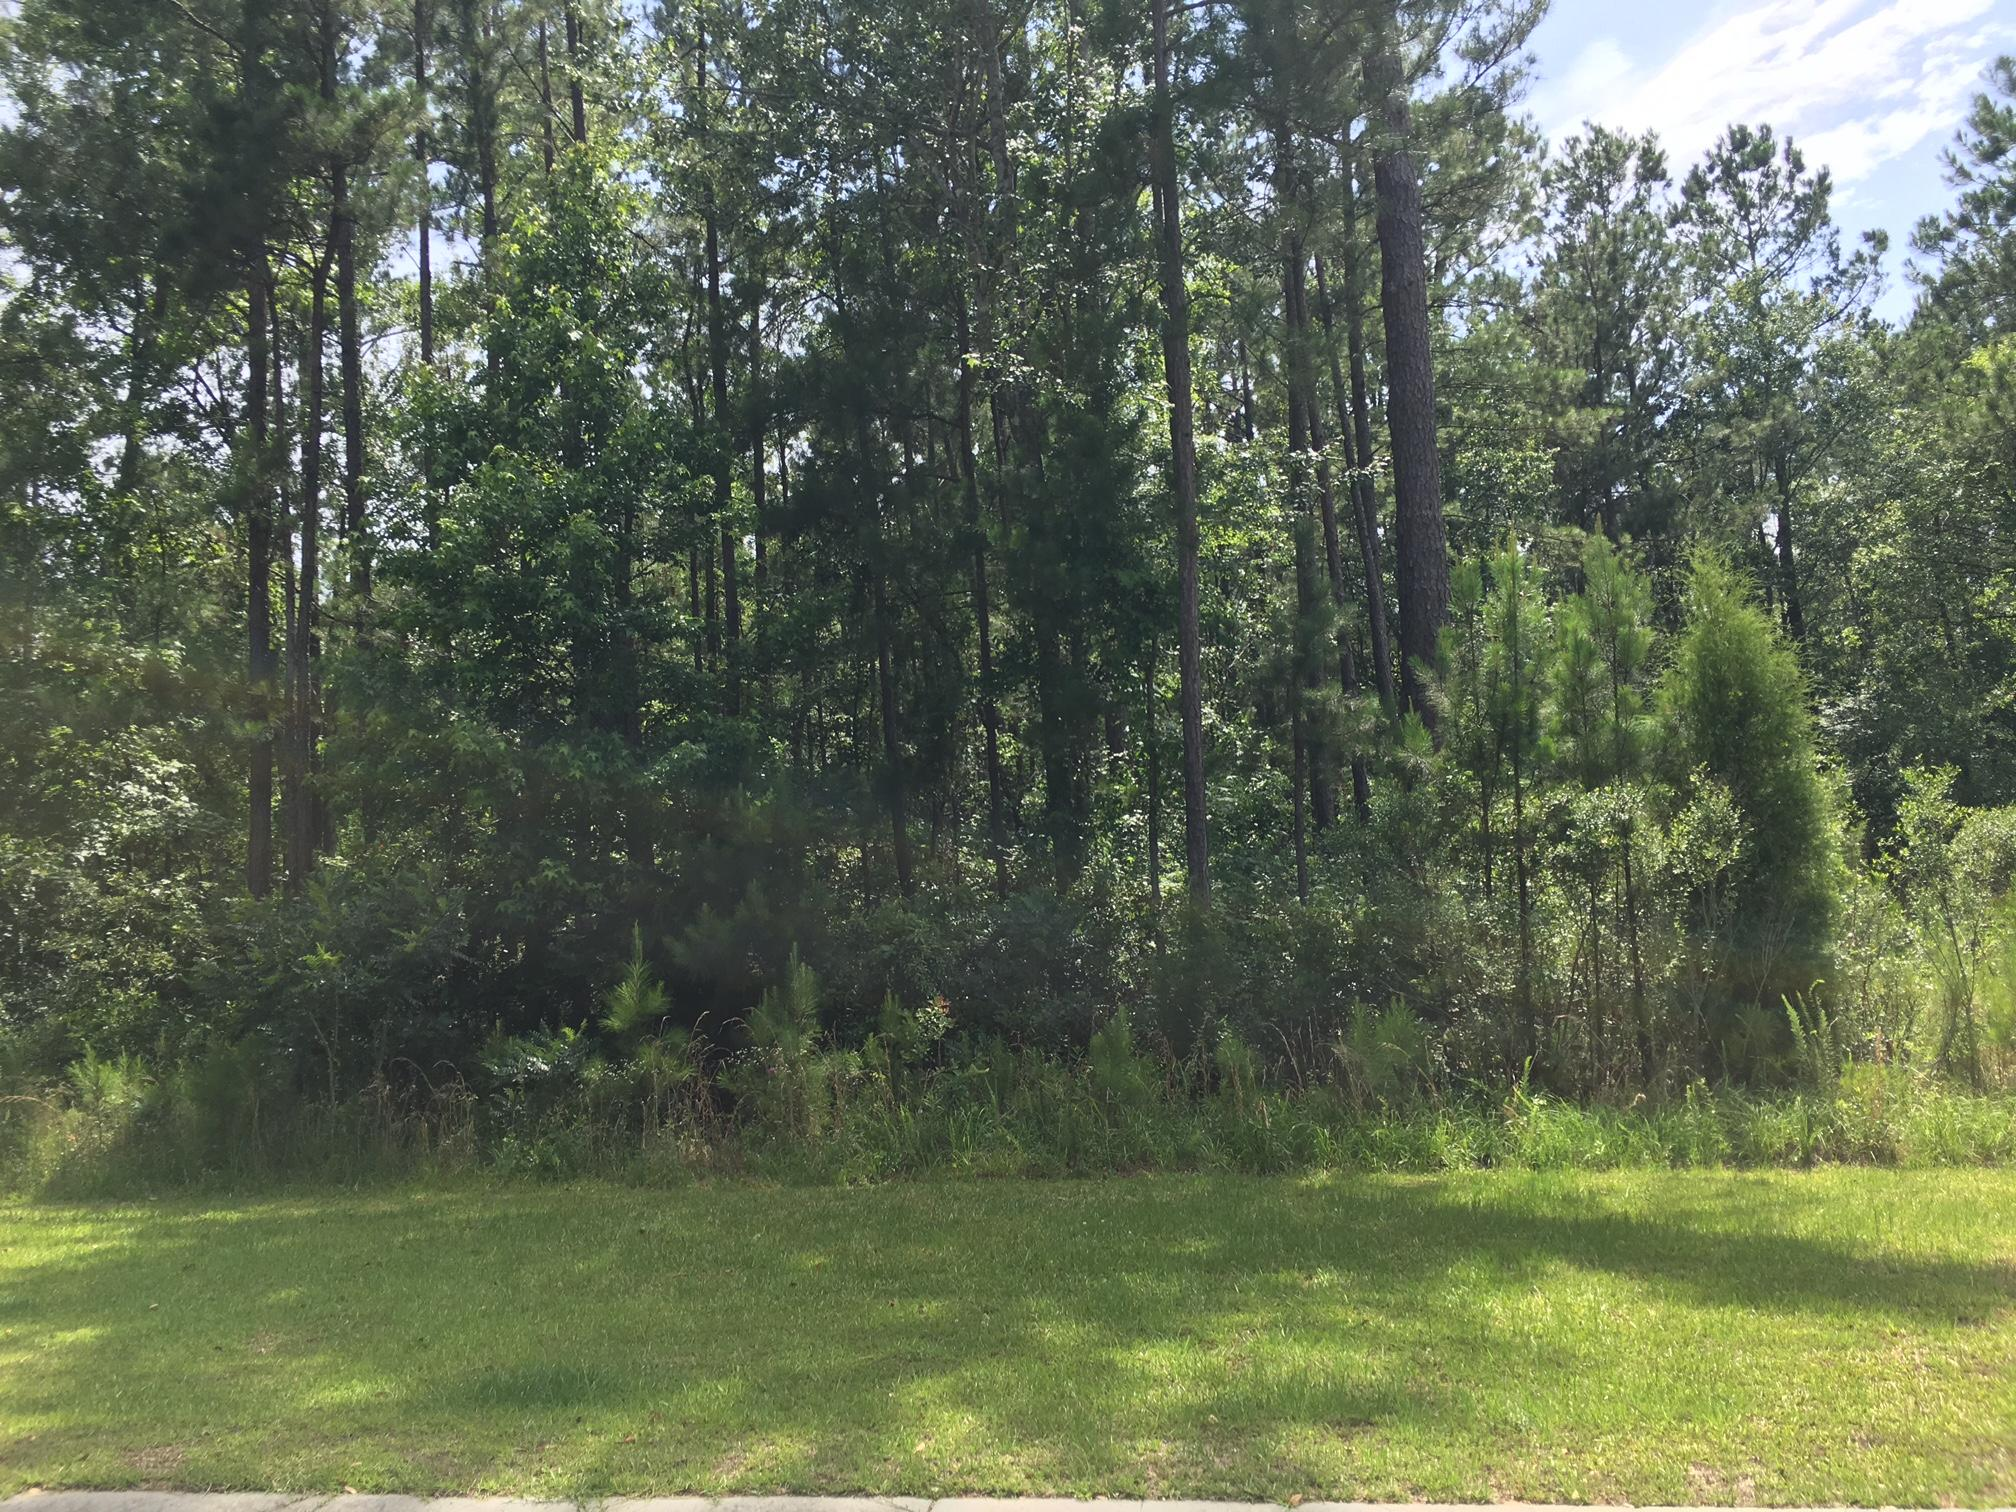 Photo of 231 Summer Breeze Way, Moncks Corner, SC 29461